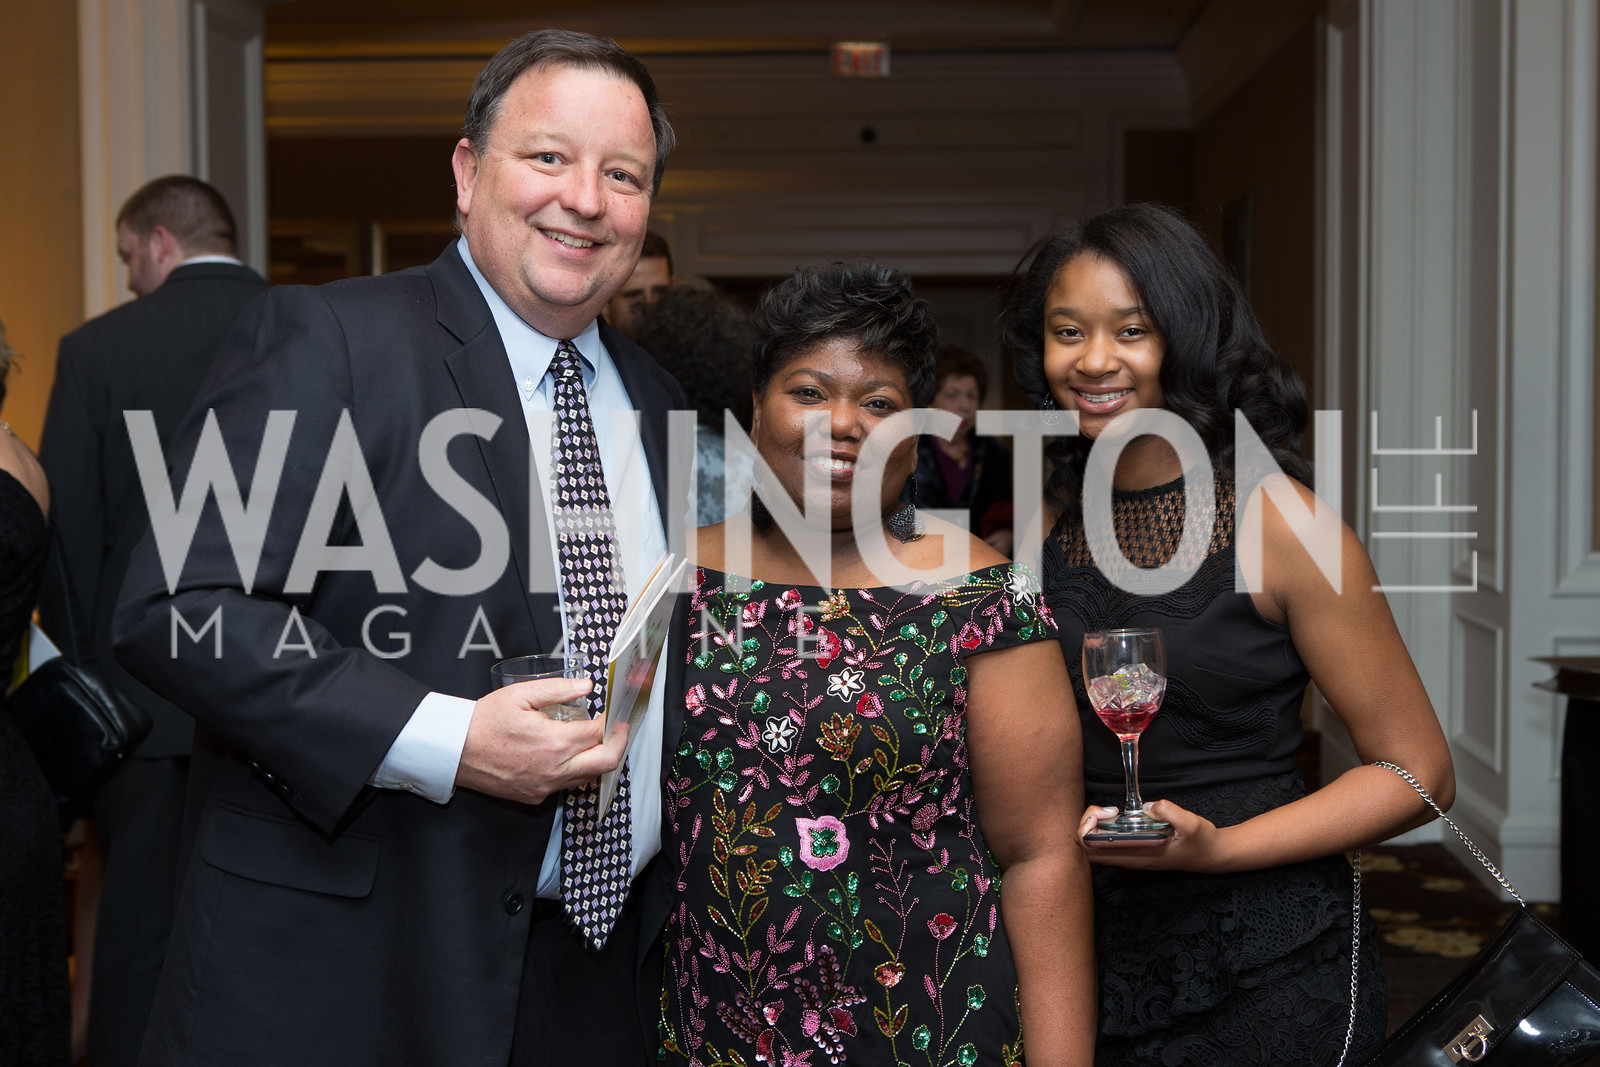 Mike McDonald, Enica Russel, Logan Russell Fearless Women Awards Ritz Carlton Tysons Corner January 21, 2018 Photo by Naku Mayo